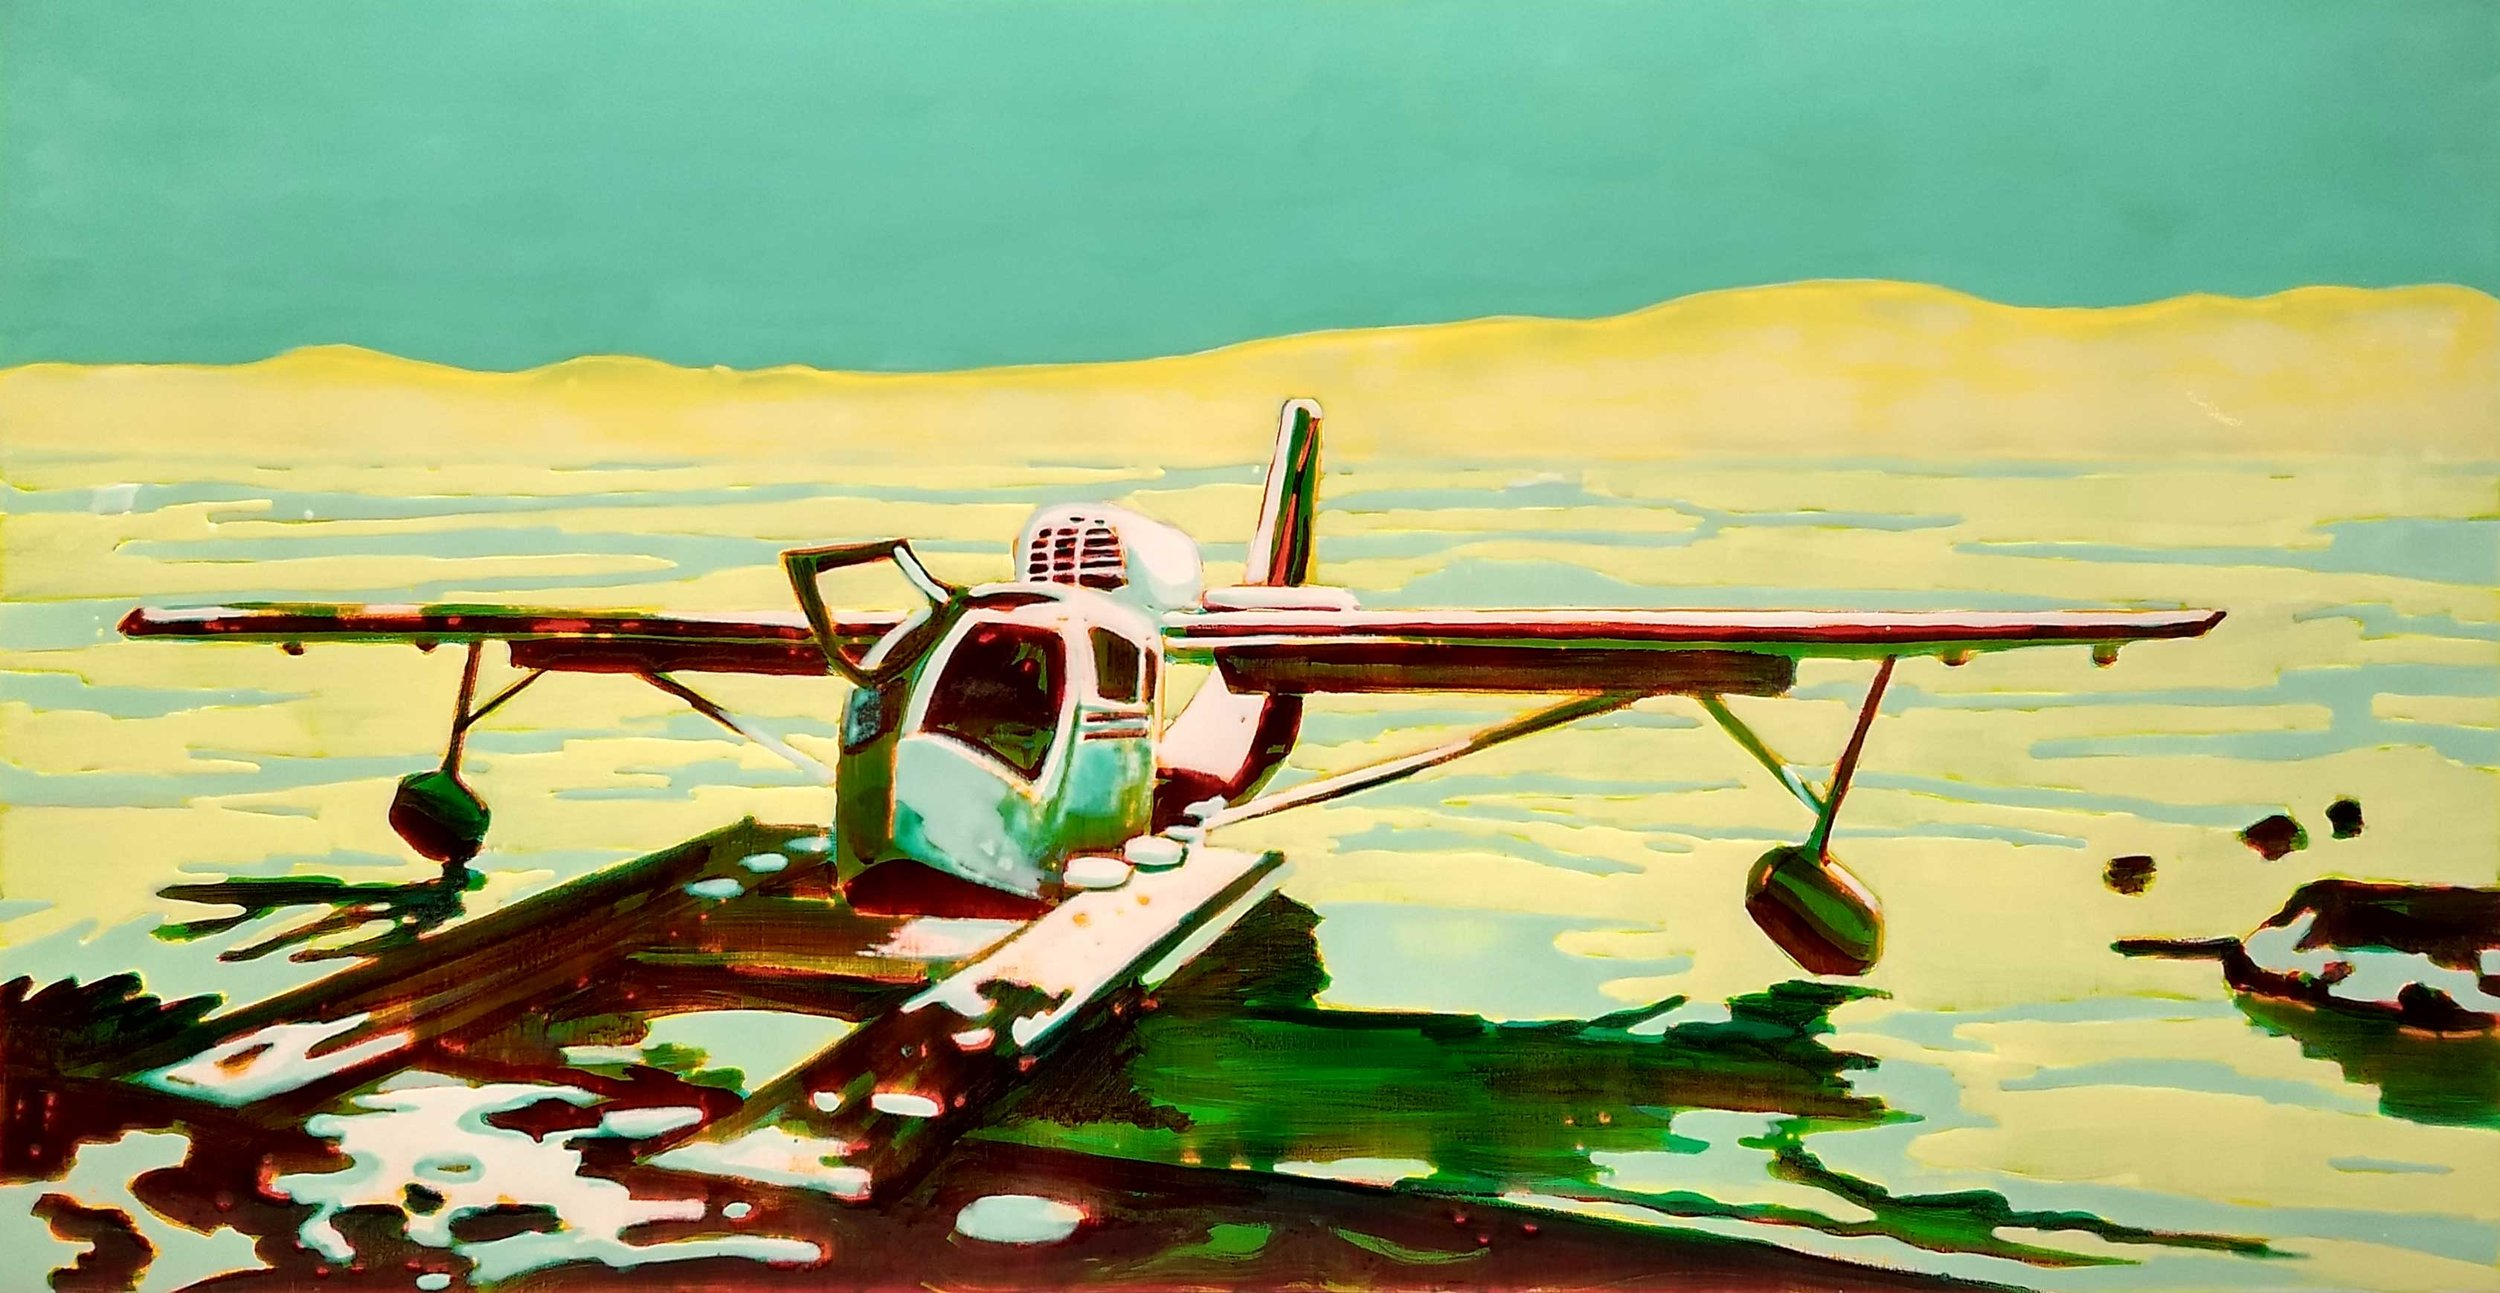 SEAPLANE ON LAKE TAHOE  70 x 140 cm acrylic and epoxy on canvas